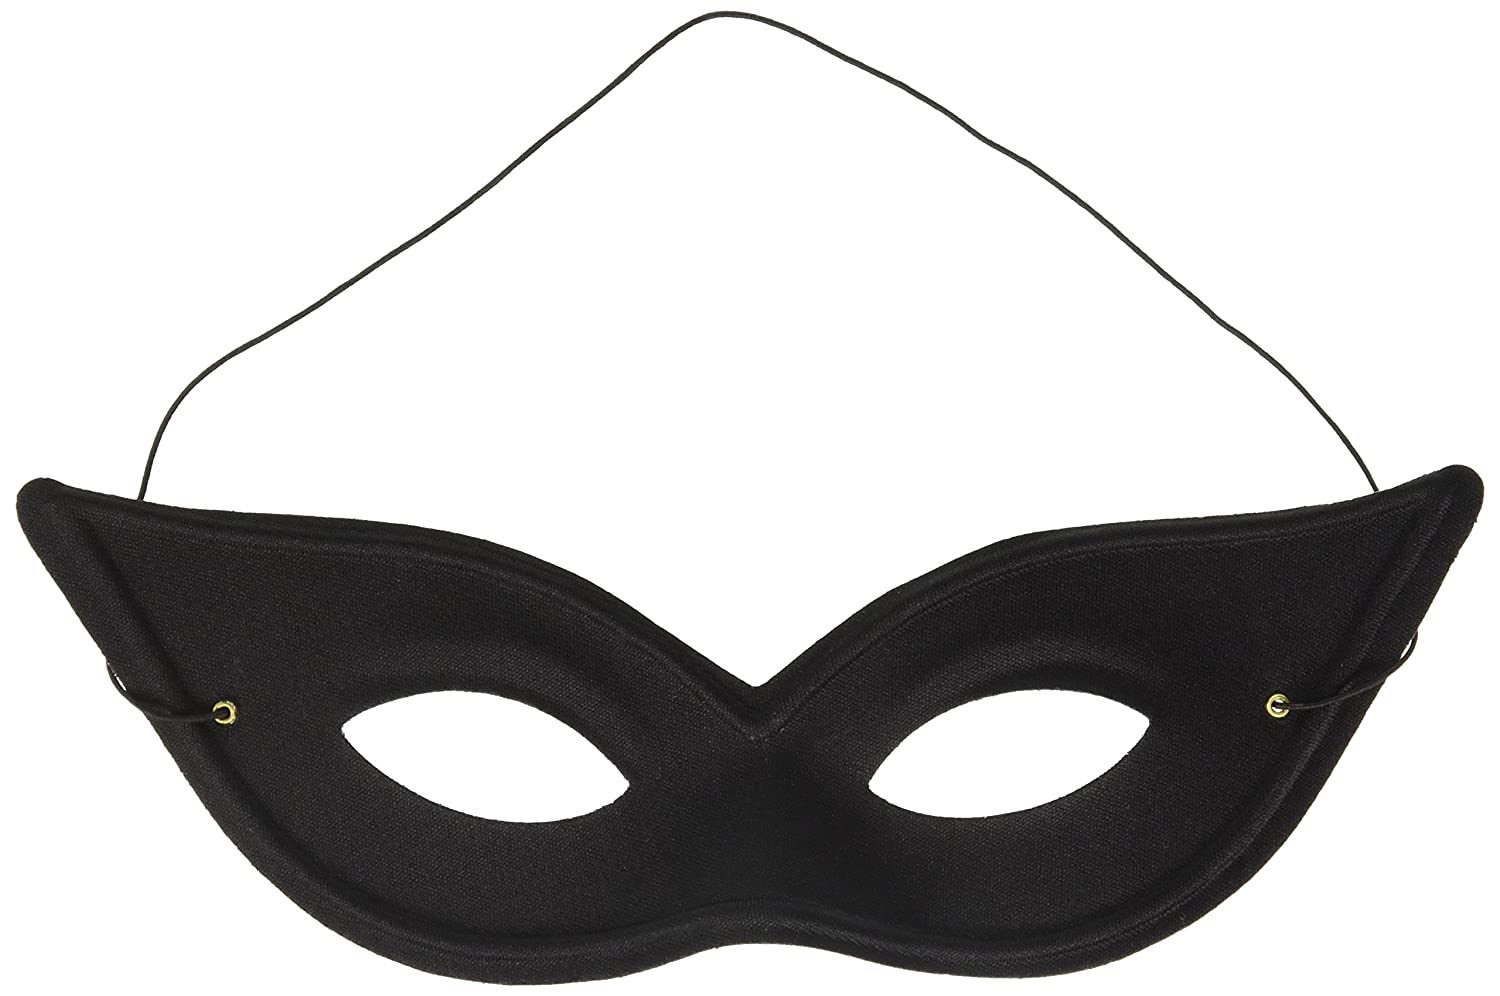 Vogue Mask Girl Costume 12 Ct.